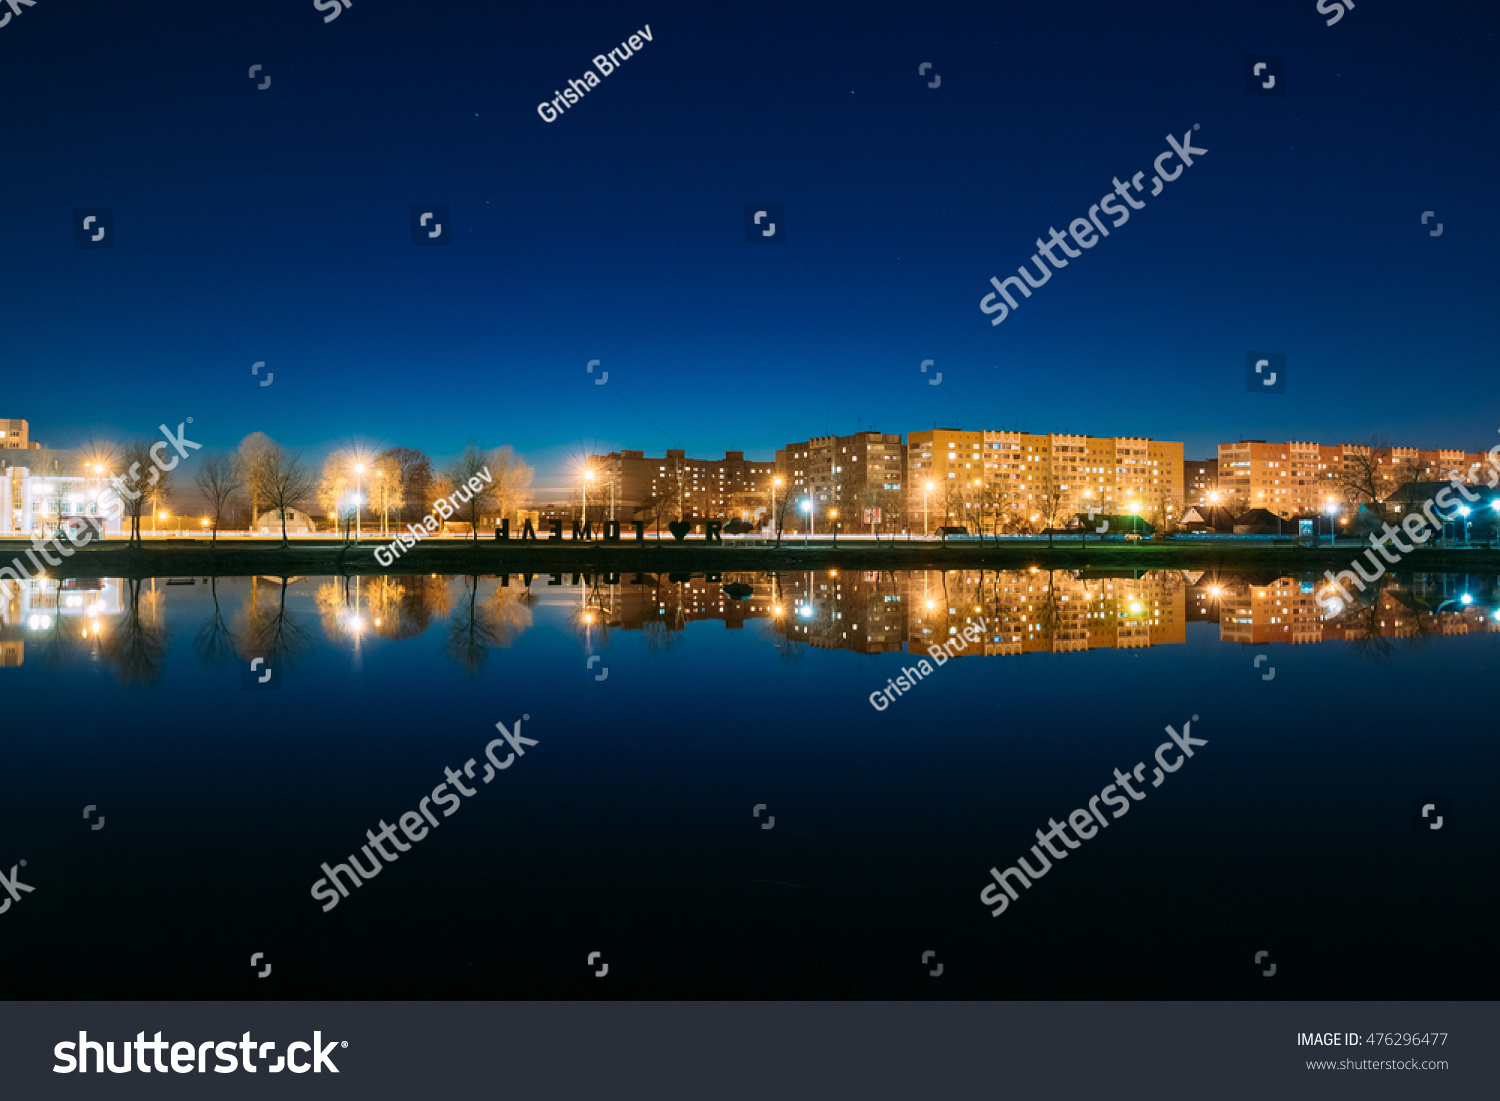 Evening Or Night View Of Urban Residential Area, Overlooks To City Lake In Illumination, Reflecting In Dark Water Surface. Navy Blue Sky Background, Gomel Homiel Belarus #476296477